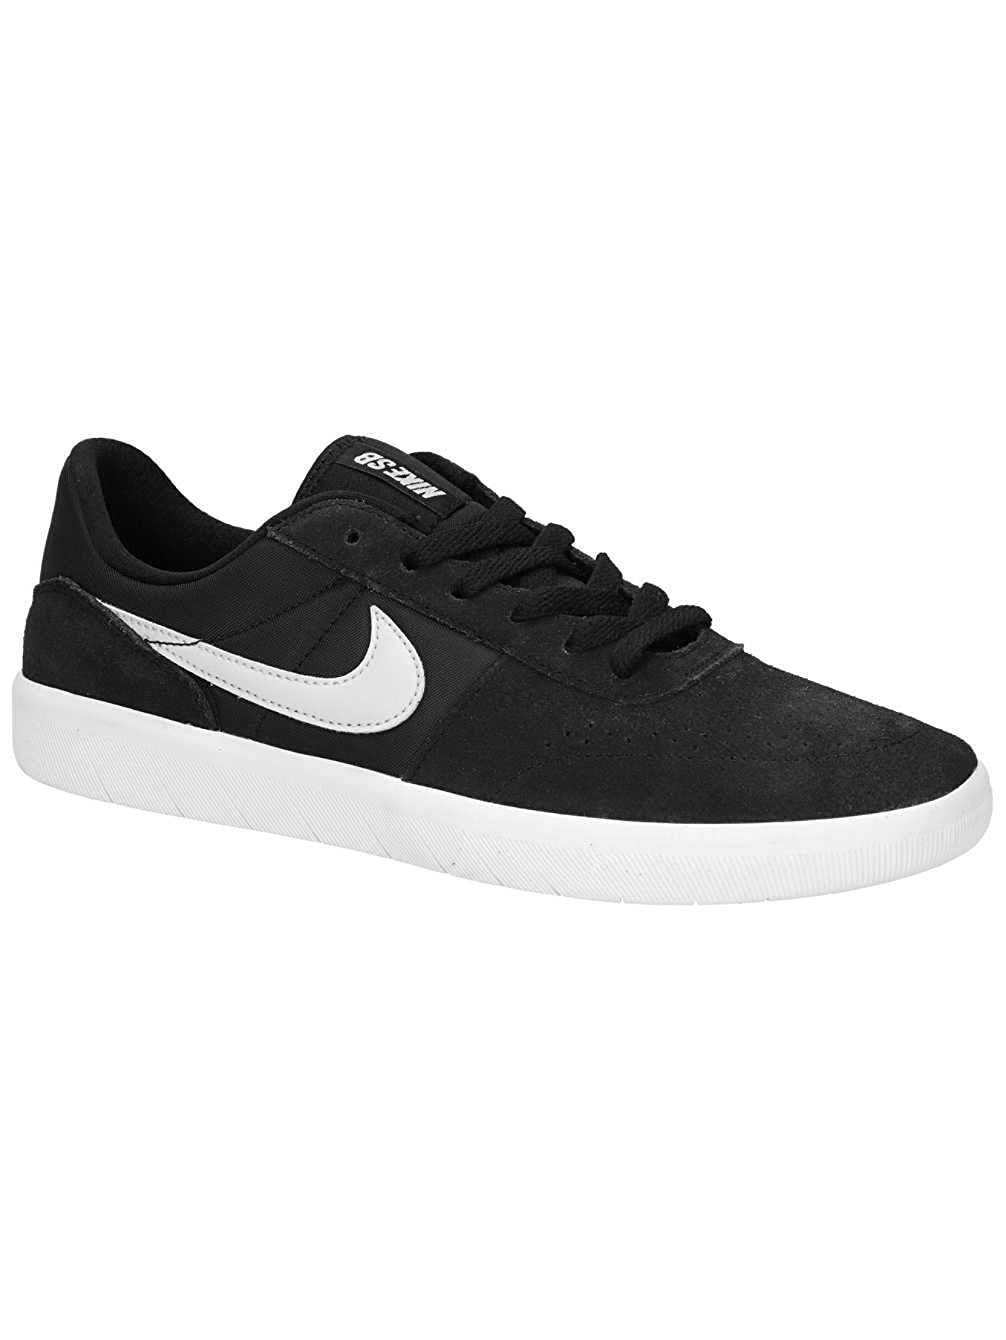 Nike SB Team Classic, Zapatillas para Hombre Multicolor (Black/Light Bone/White 001)